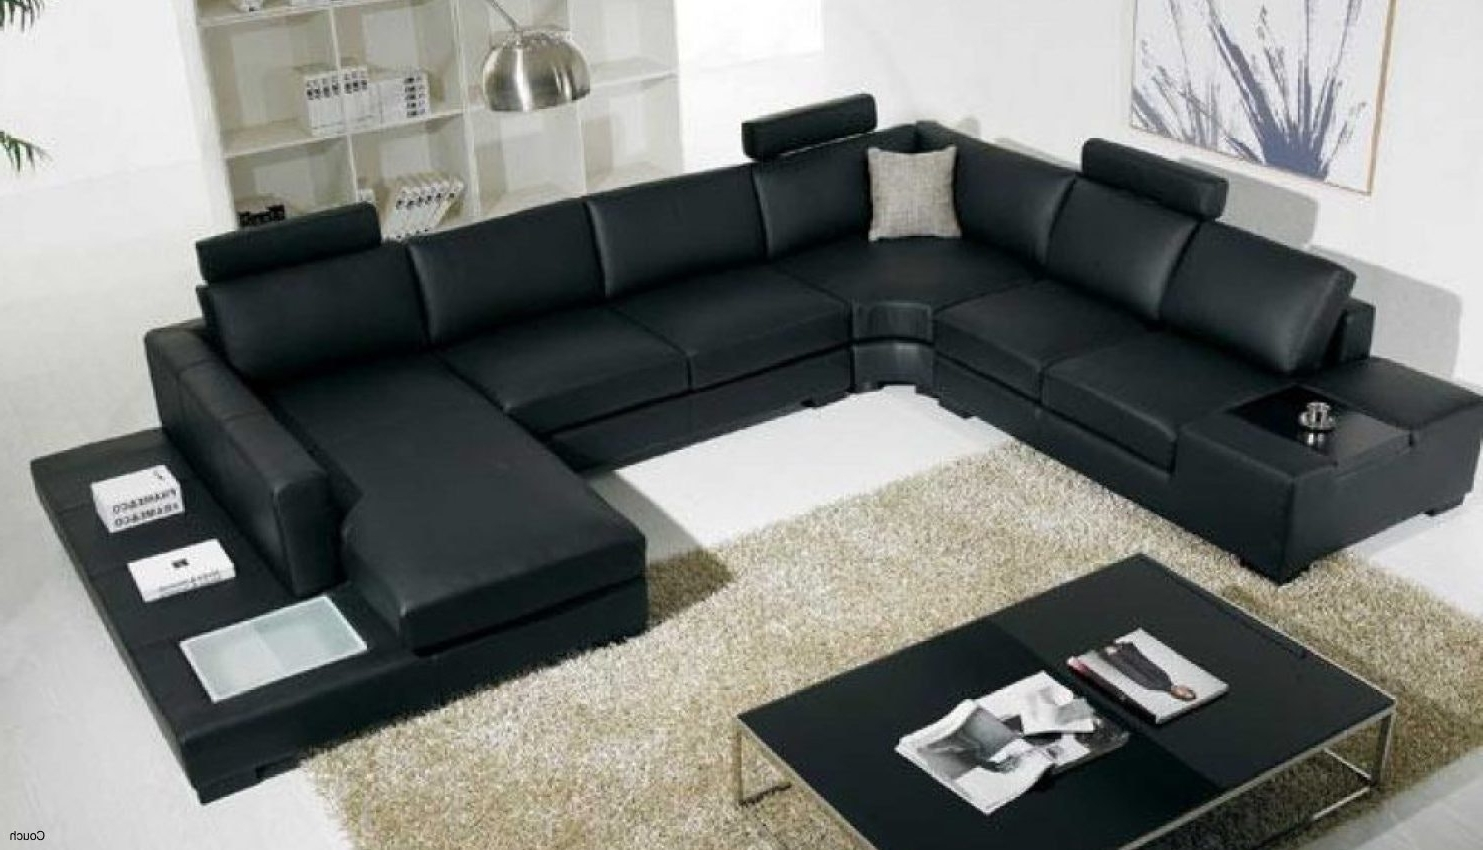 Fabulous Inspirative Leather Black Walmart Sofa Bed And Standing Inside Most Up To Date Halifax Sectional Sofas (View 4 of 20)